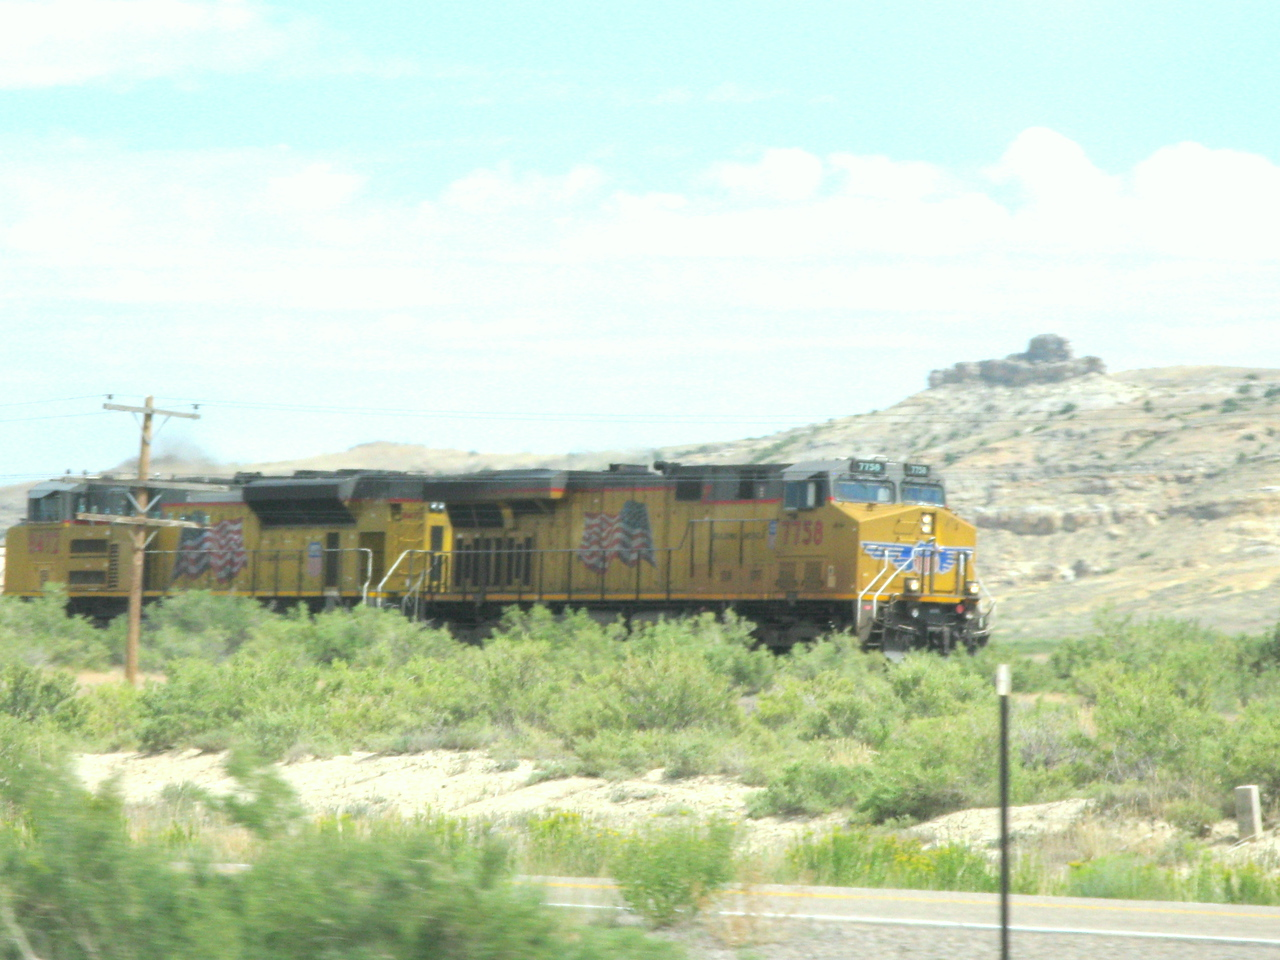 We saw lots of Union Pacific trains along I-80 in Utah and Wyoming.  This one is west bound in Wyoming.